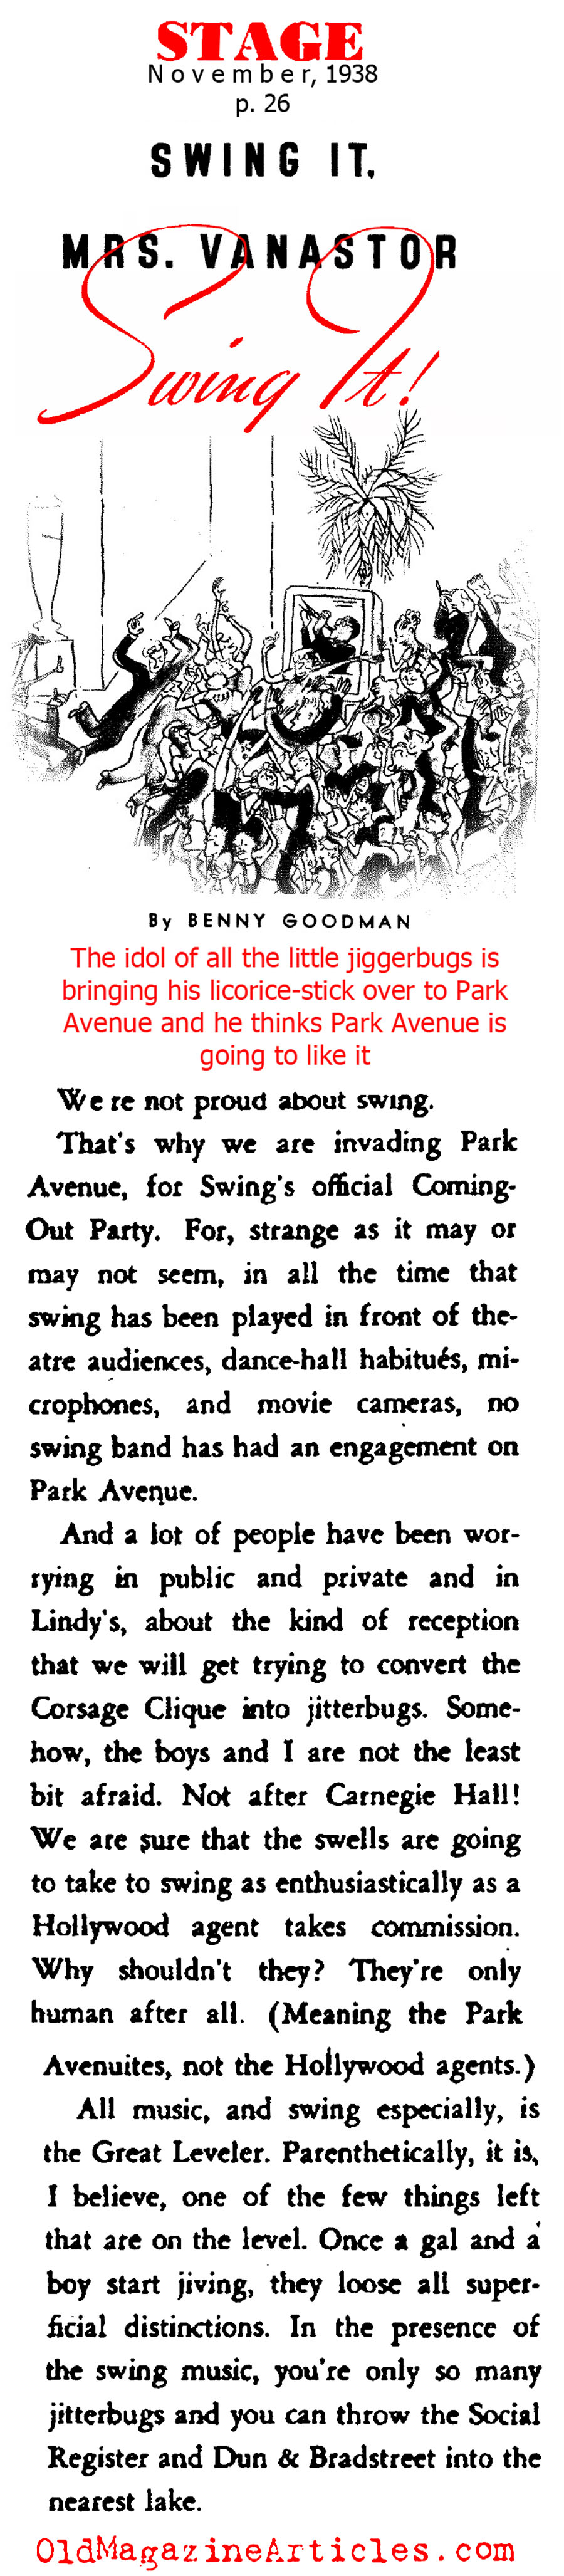 Benny Goodman, The King of Swing, on Park Avenue  (Stage Magazine, 1938)